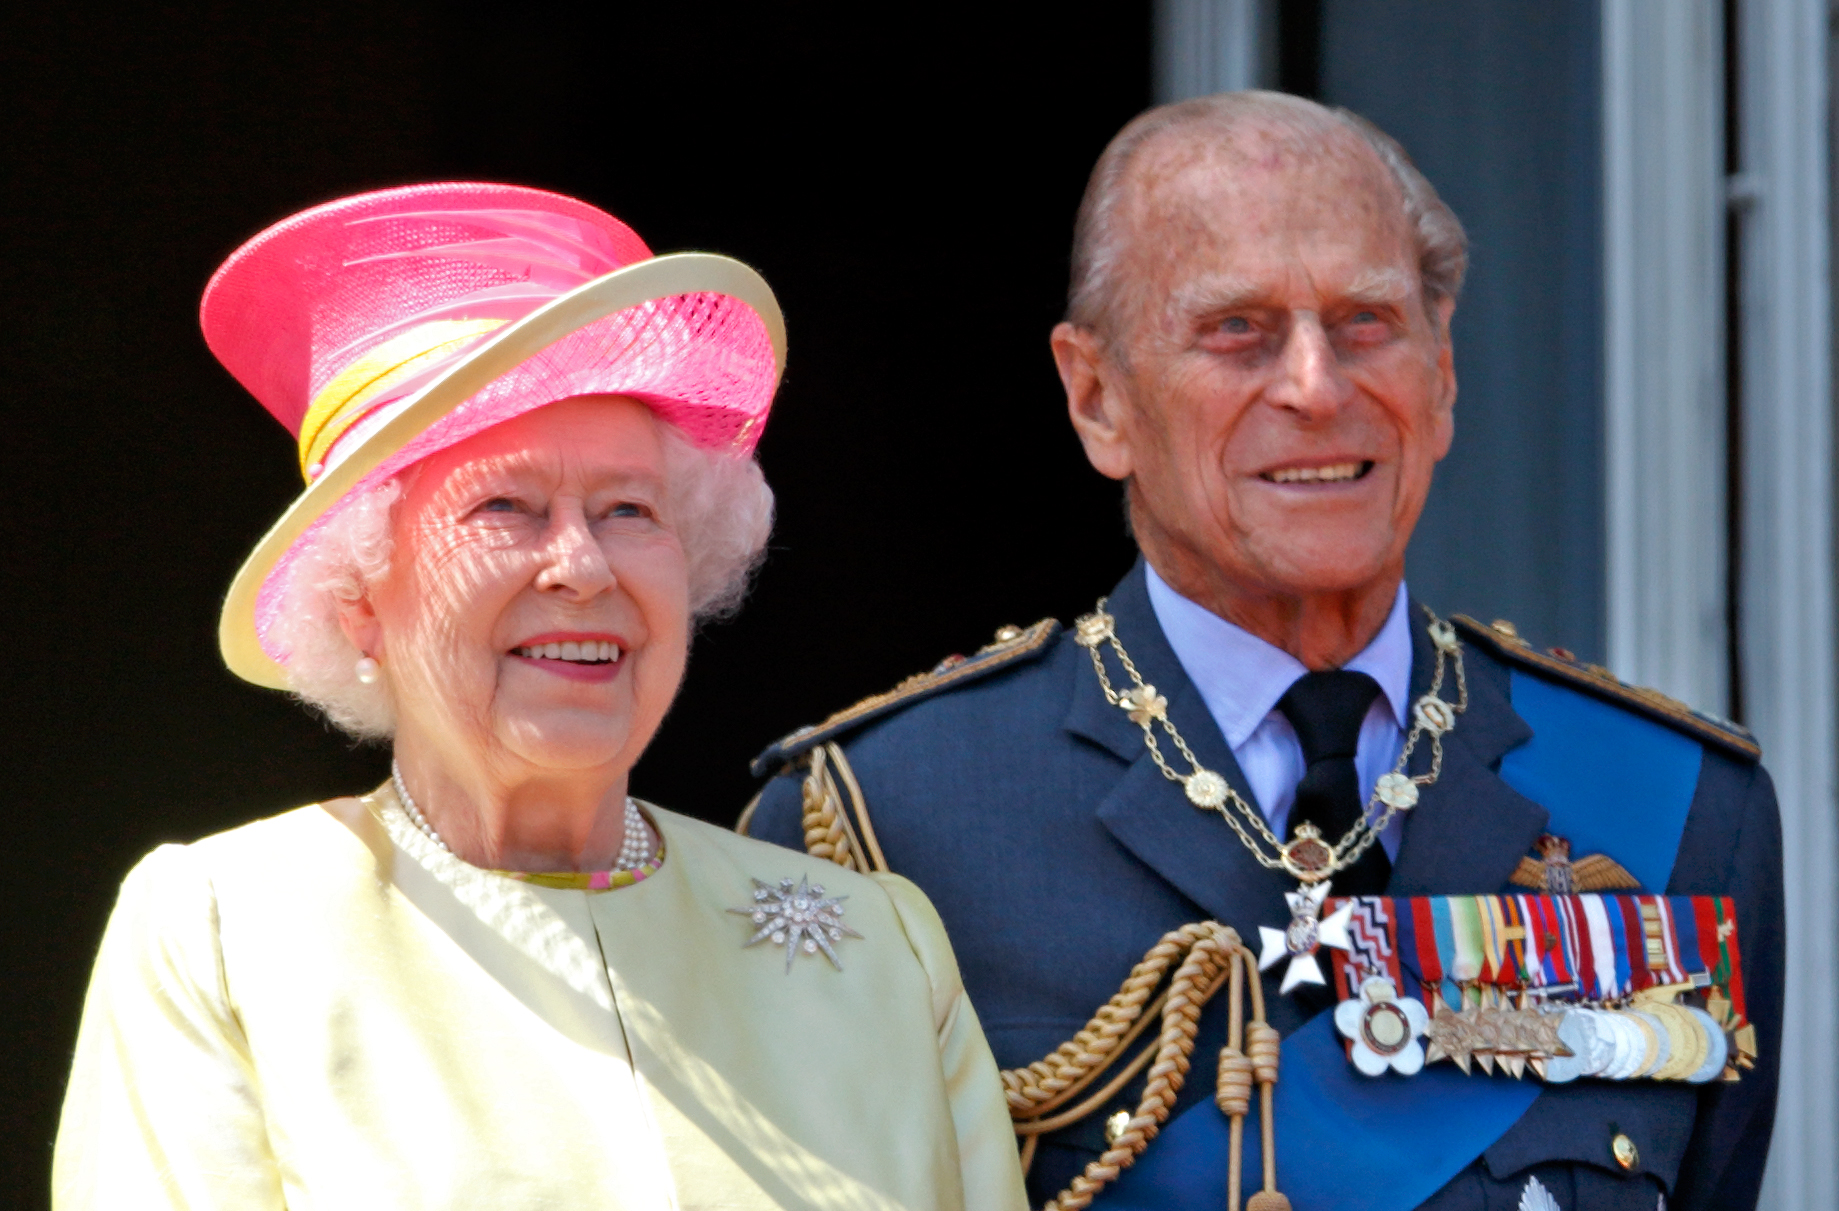 Queen Elizabeth II and Prince Philip, Duke of Edinburgh watch a flypast of Spitfire & Hurricane aircraft from the balcony of Buckingham Palace to commemorate the 75th Anniversary of The Battle of Britain on July 10, 2015 in London